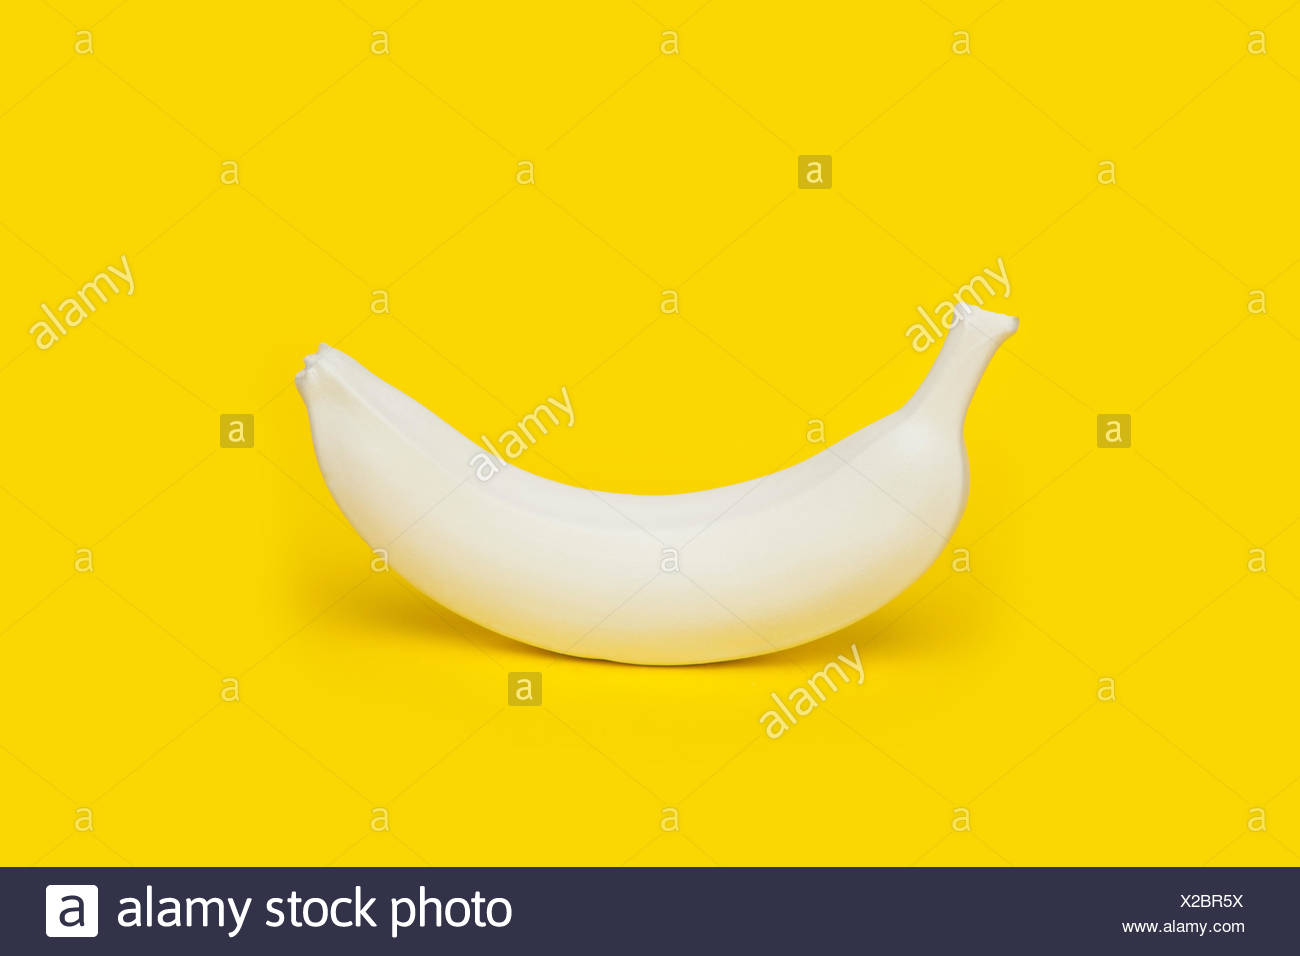 Banana painted white on yellow background - Stock Image